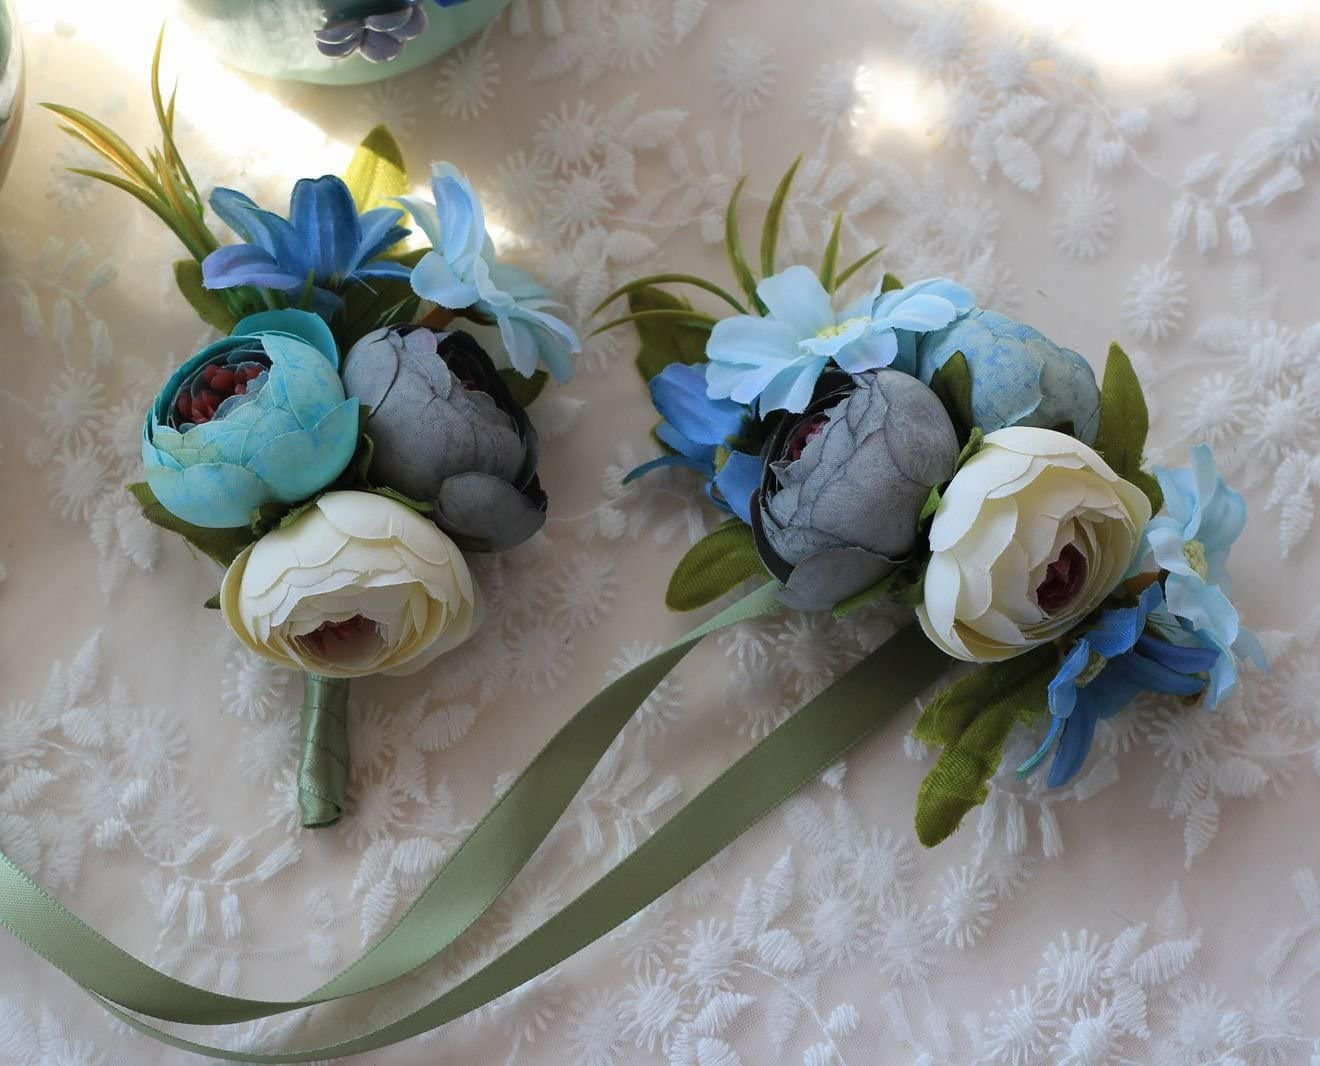 and bouquets peach silk boutonni\u00e8re pin prom corsage bracelet Wedding corsages sage boutonni\u00e8res and navy corsage for wedding